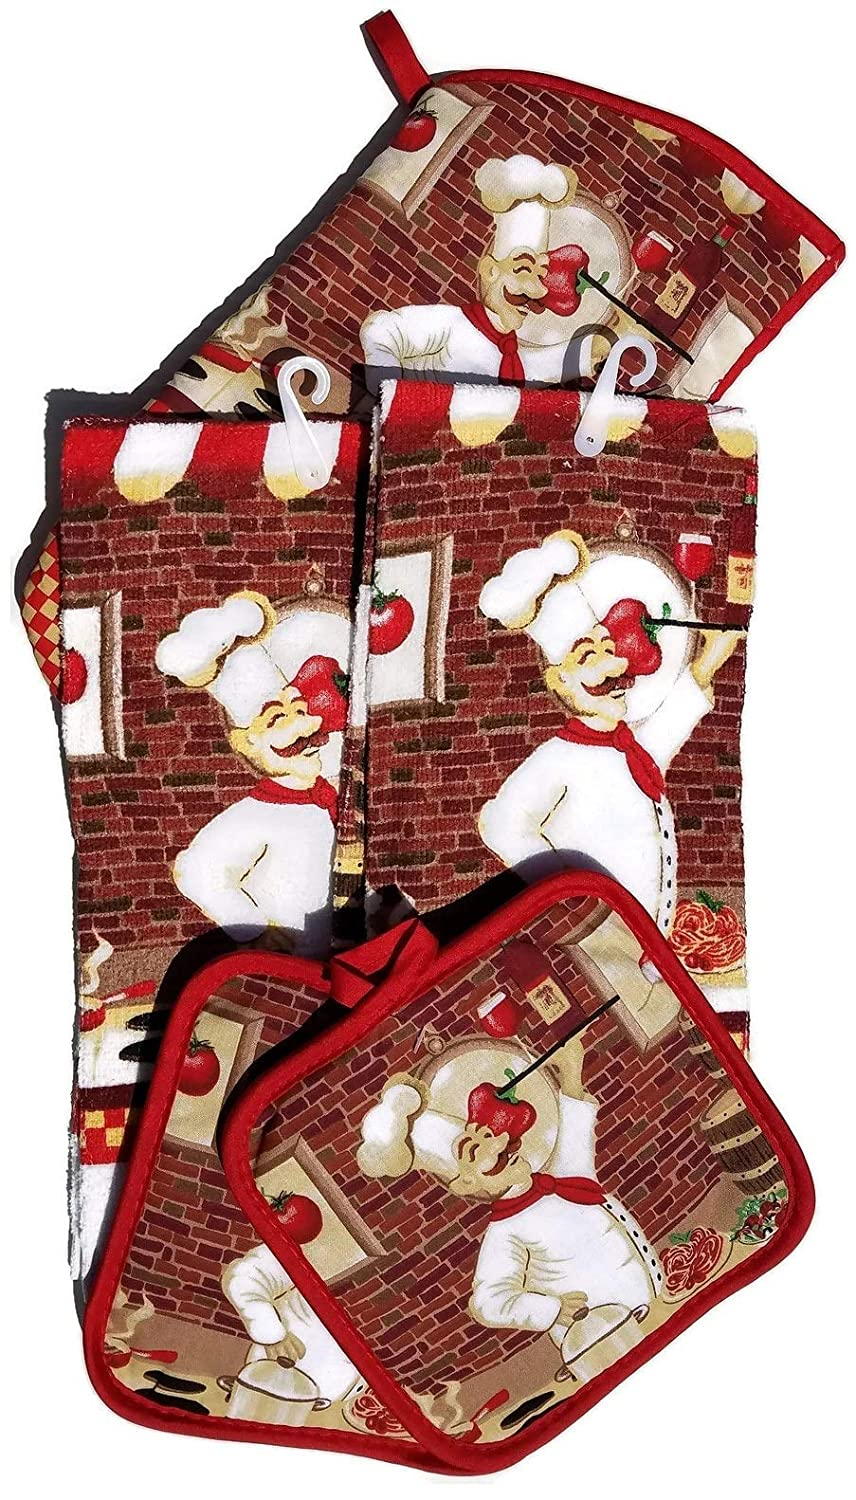 HomeConcept 5 Piece Kitchen Towel Set Includes 2 Towels 2 Potholders 1 Oven Mitt (Chef/Cook)